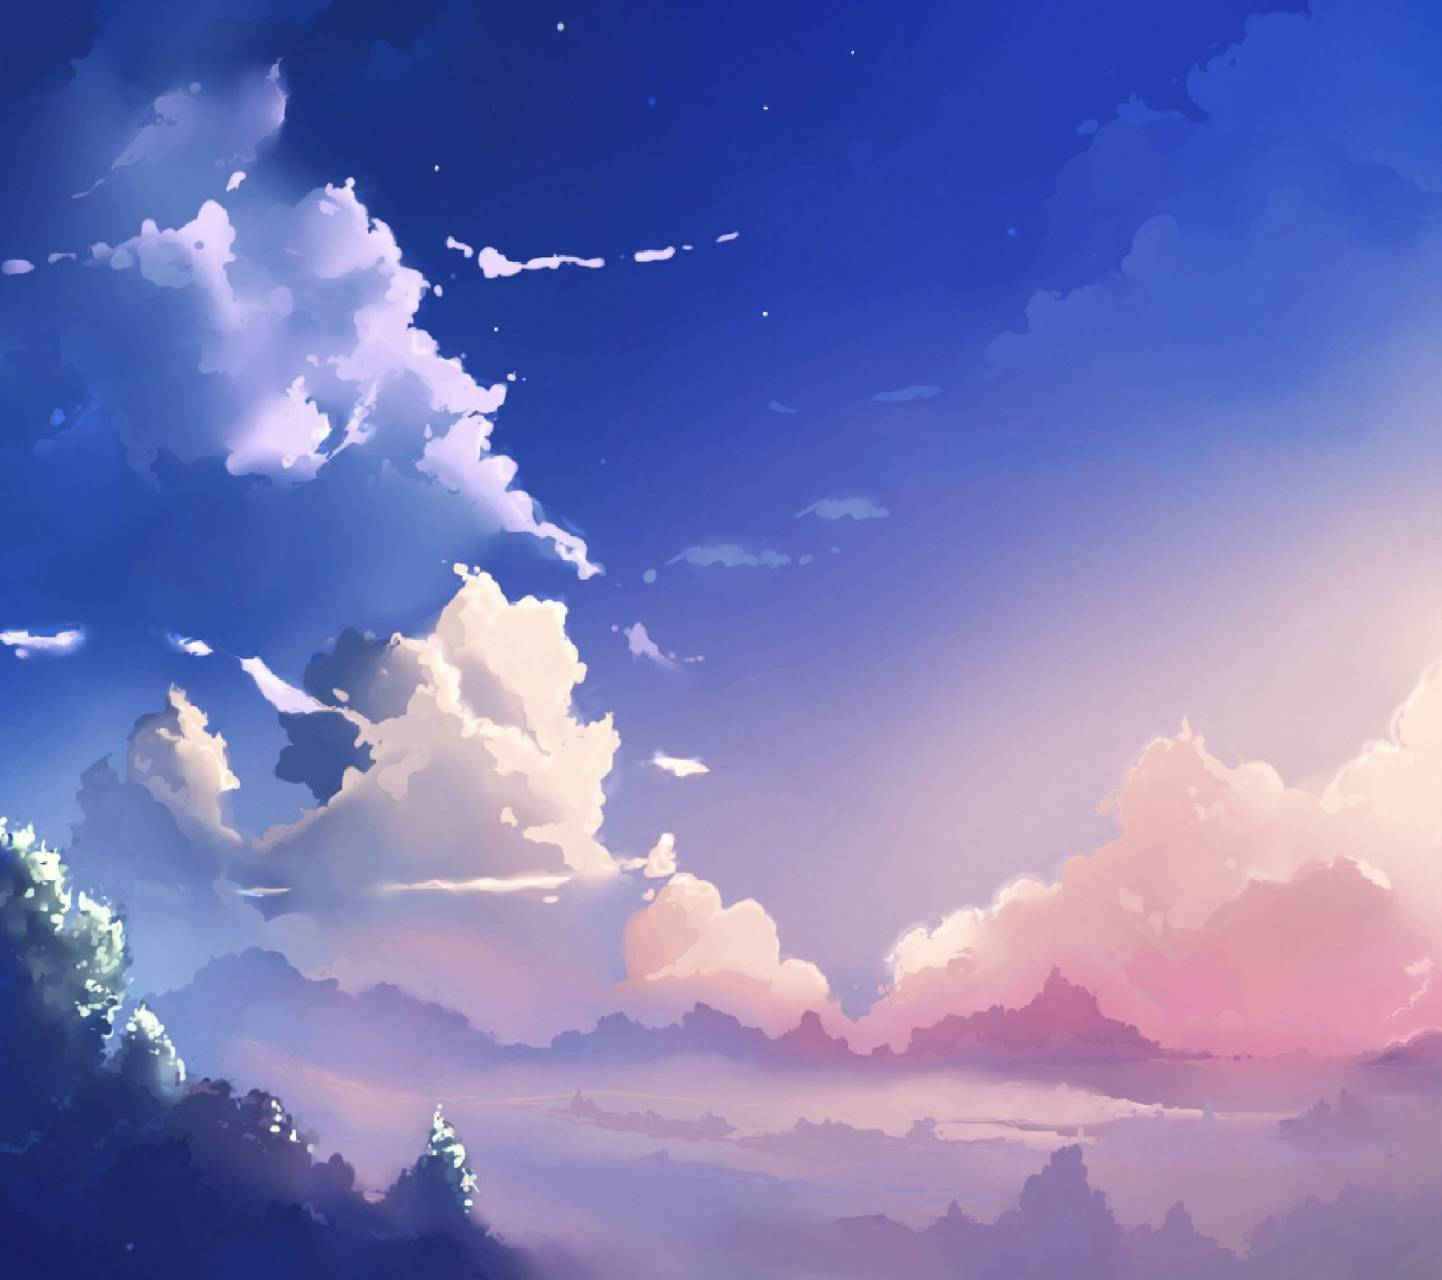 Anime Sky Wallpaper By Thegrandstaf94 A7 Free On Zedge